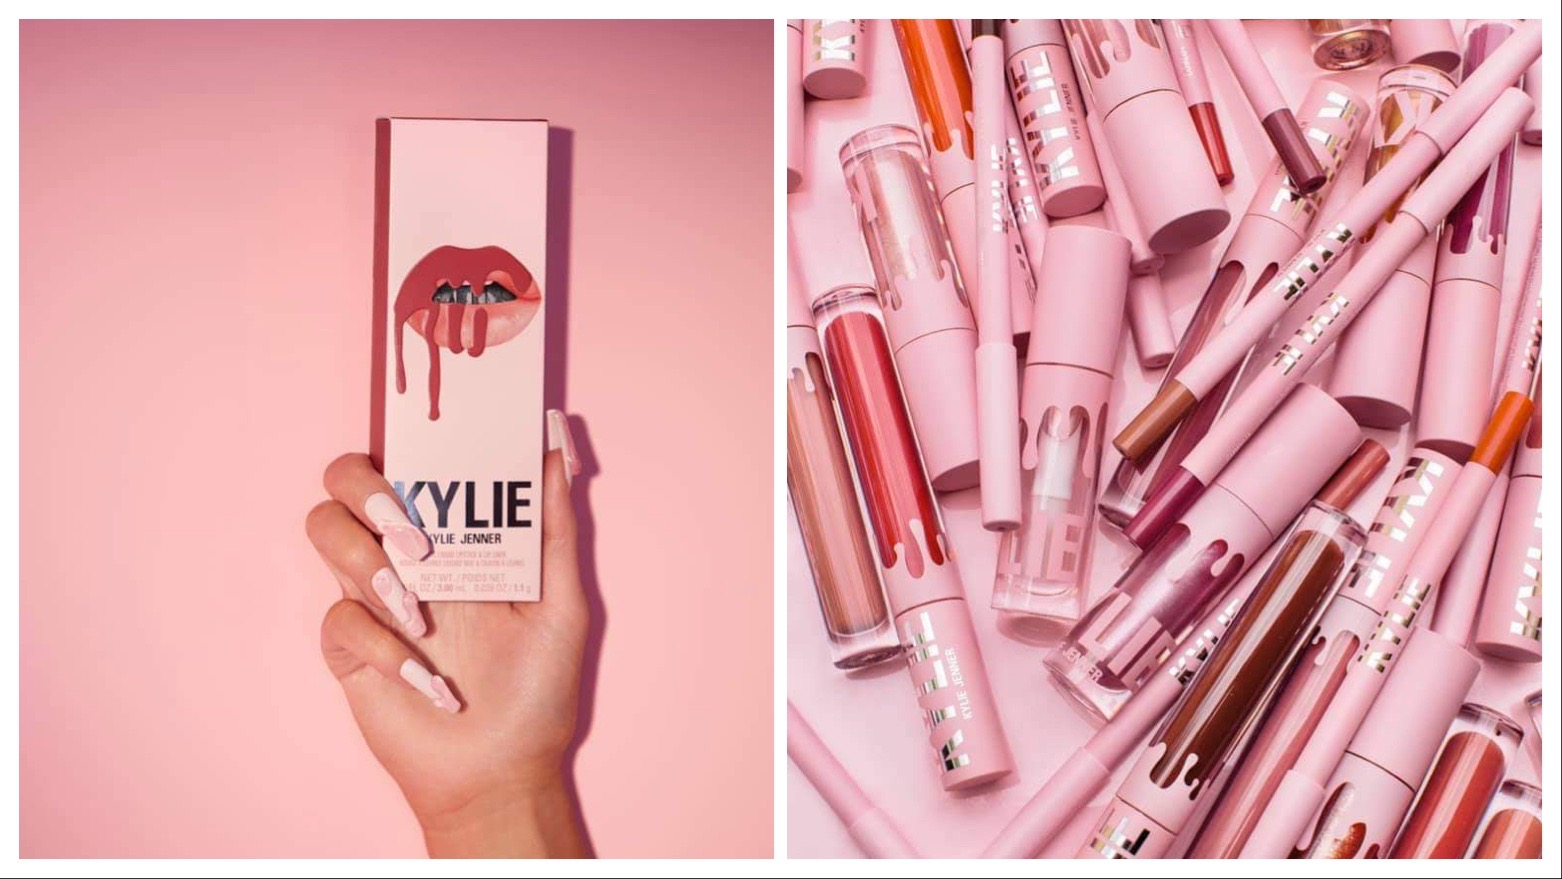 Kylie Cosmetics products